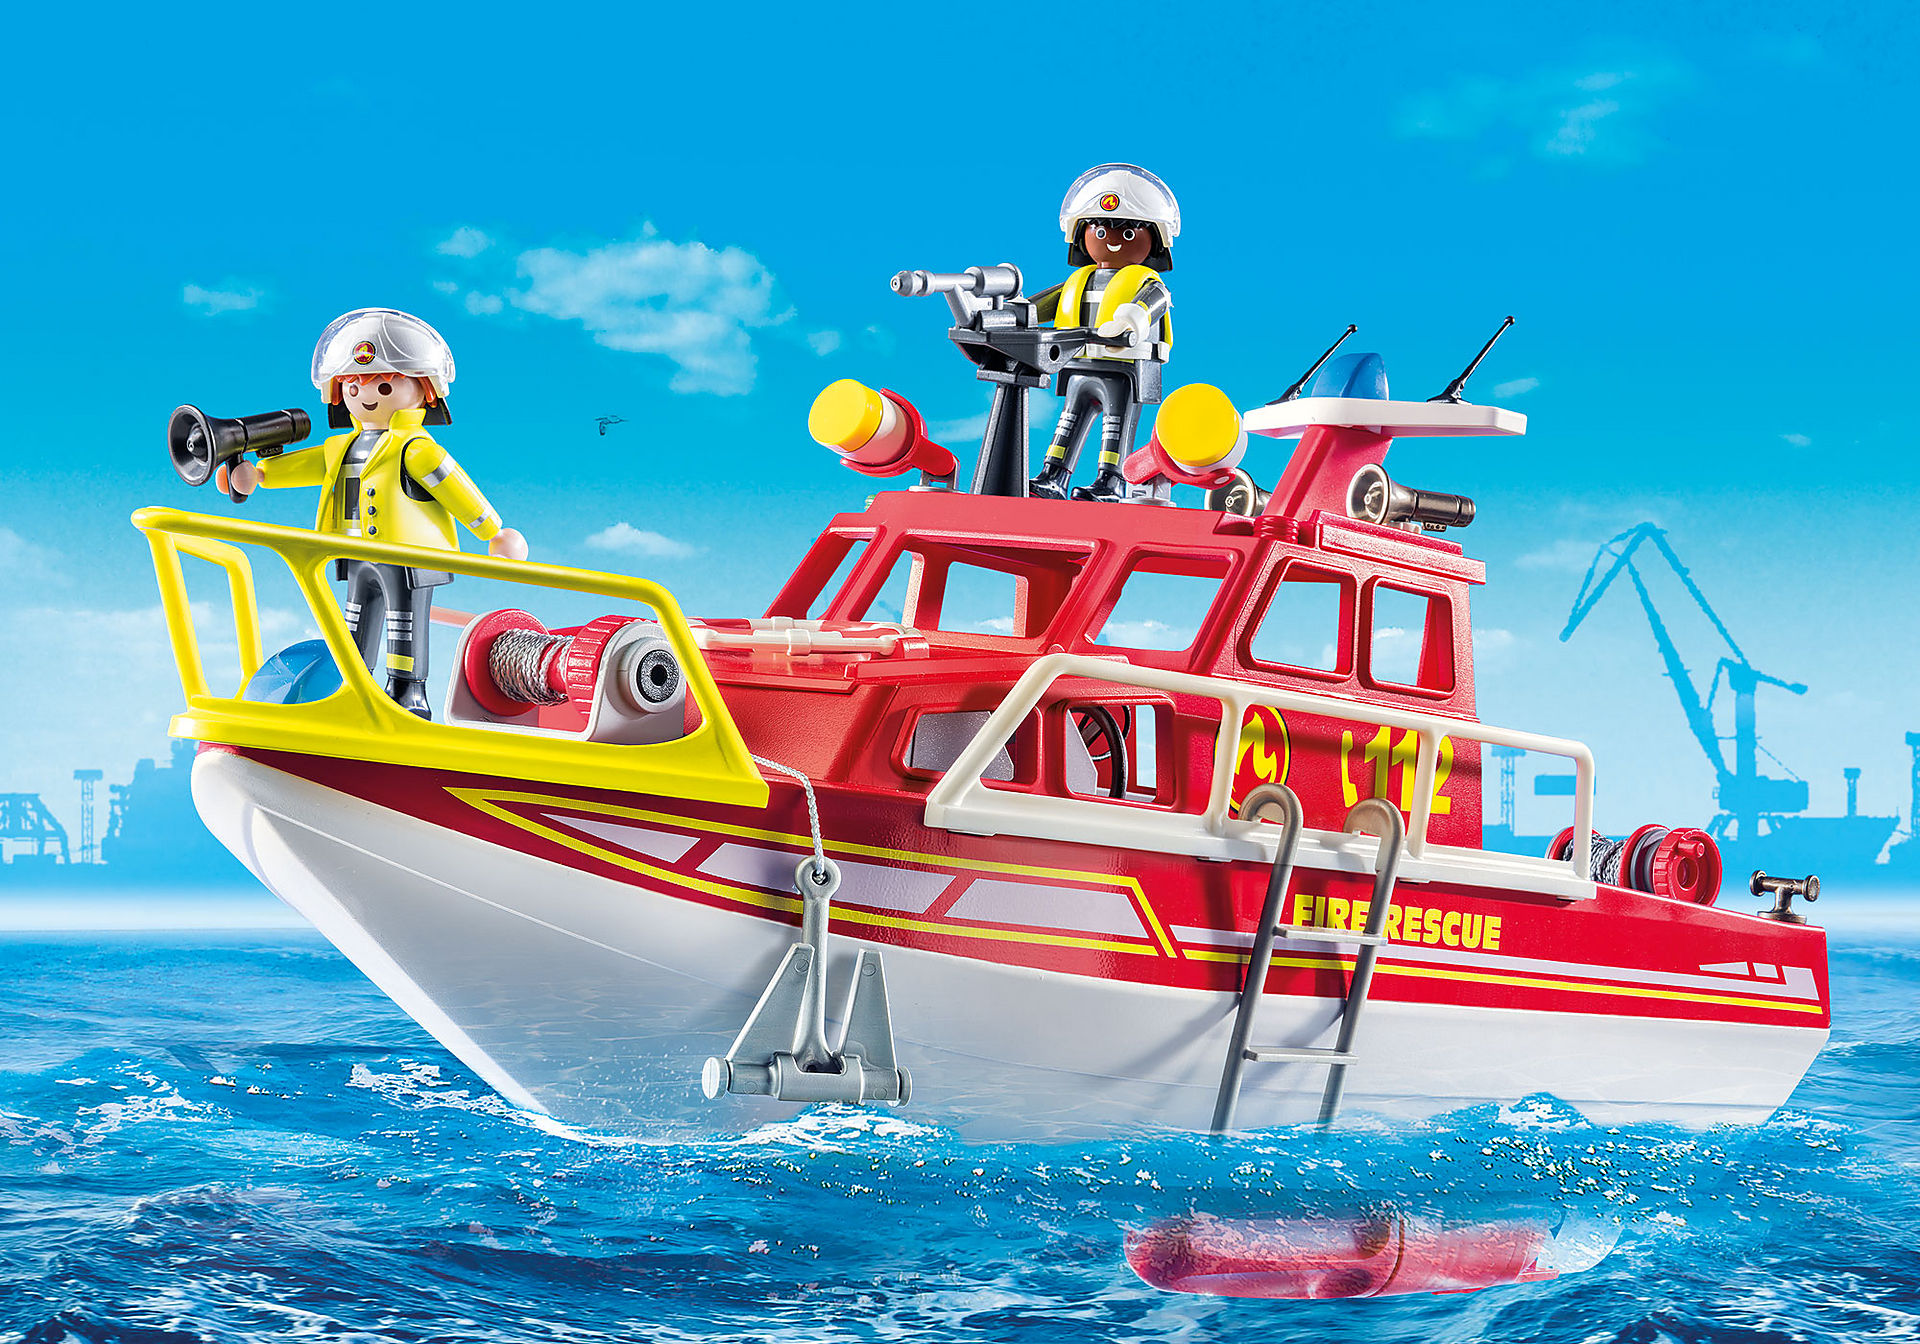 http://media.playmobil.com/i/playmobil/70147_product_detail/Feuerlöschboot